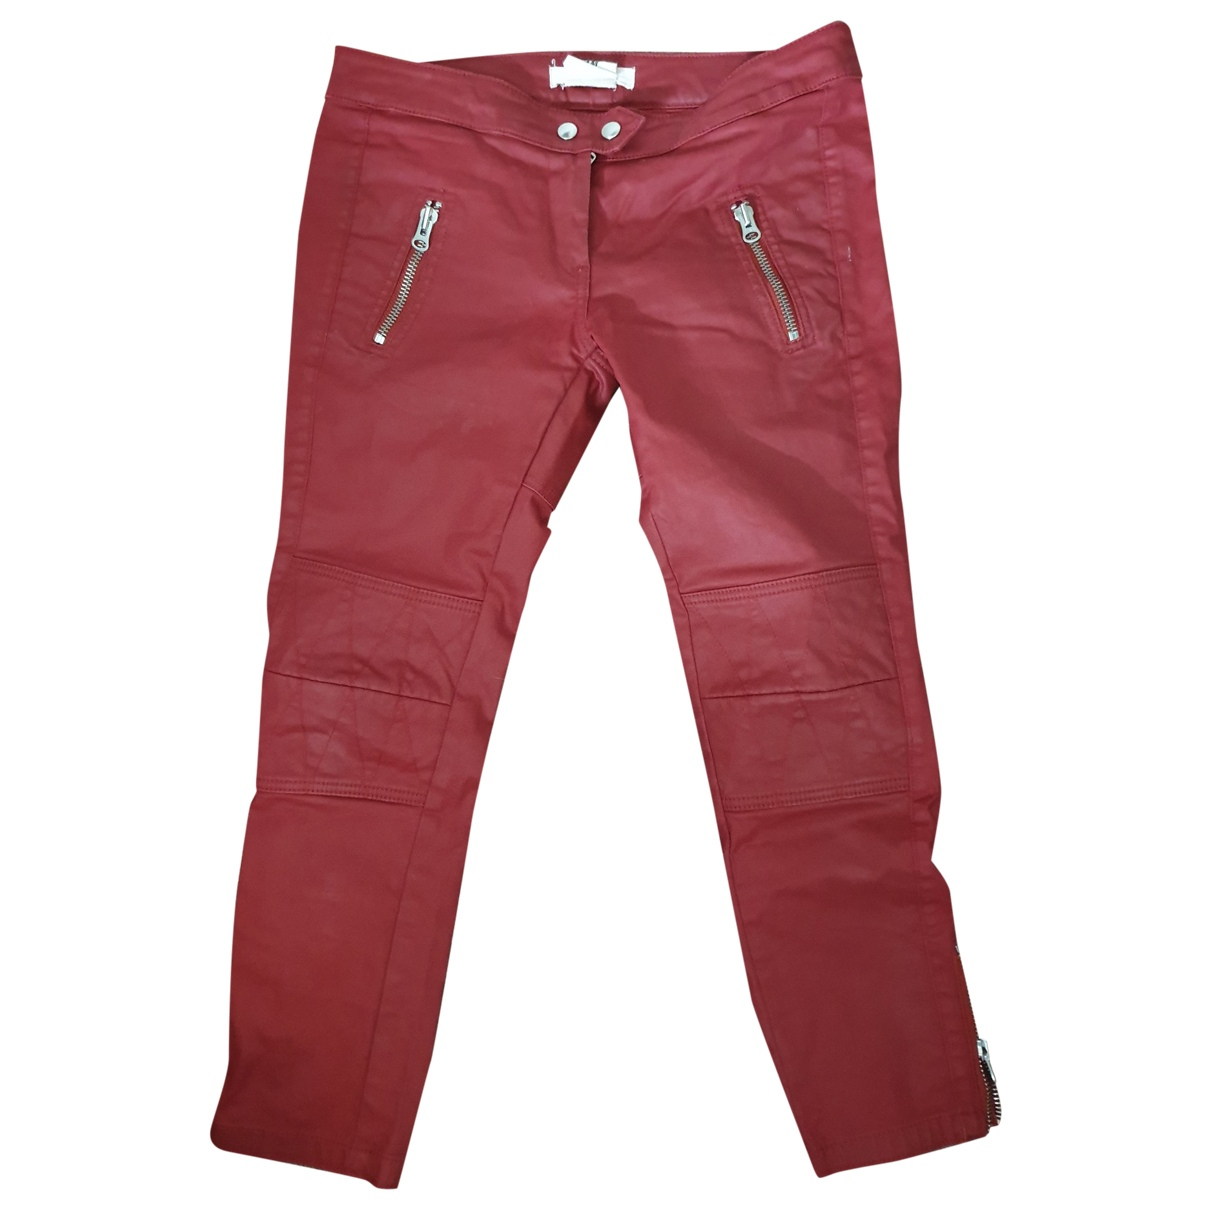 Isabel Marant Pour H&m \N Red Cotton Trousers for Women 38 FR